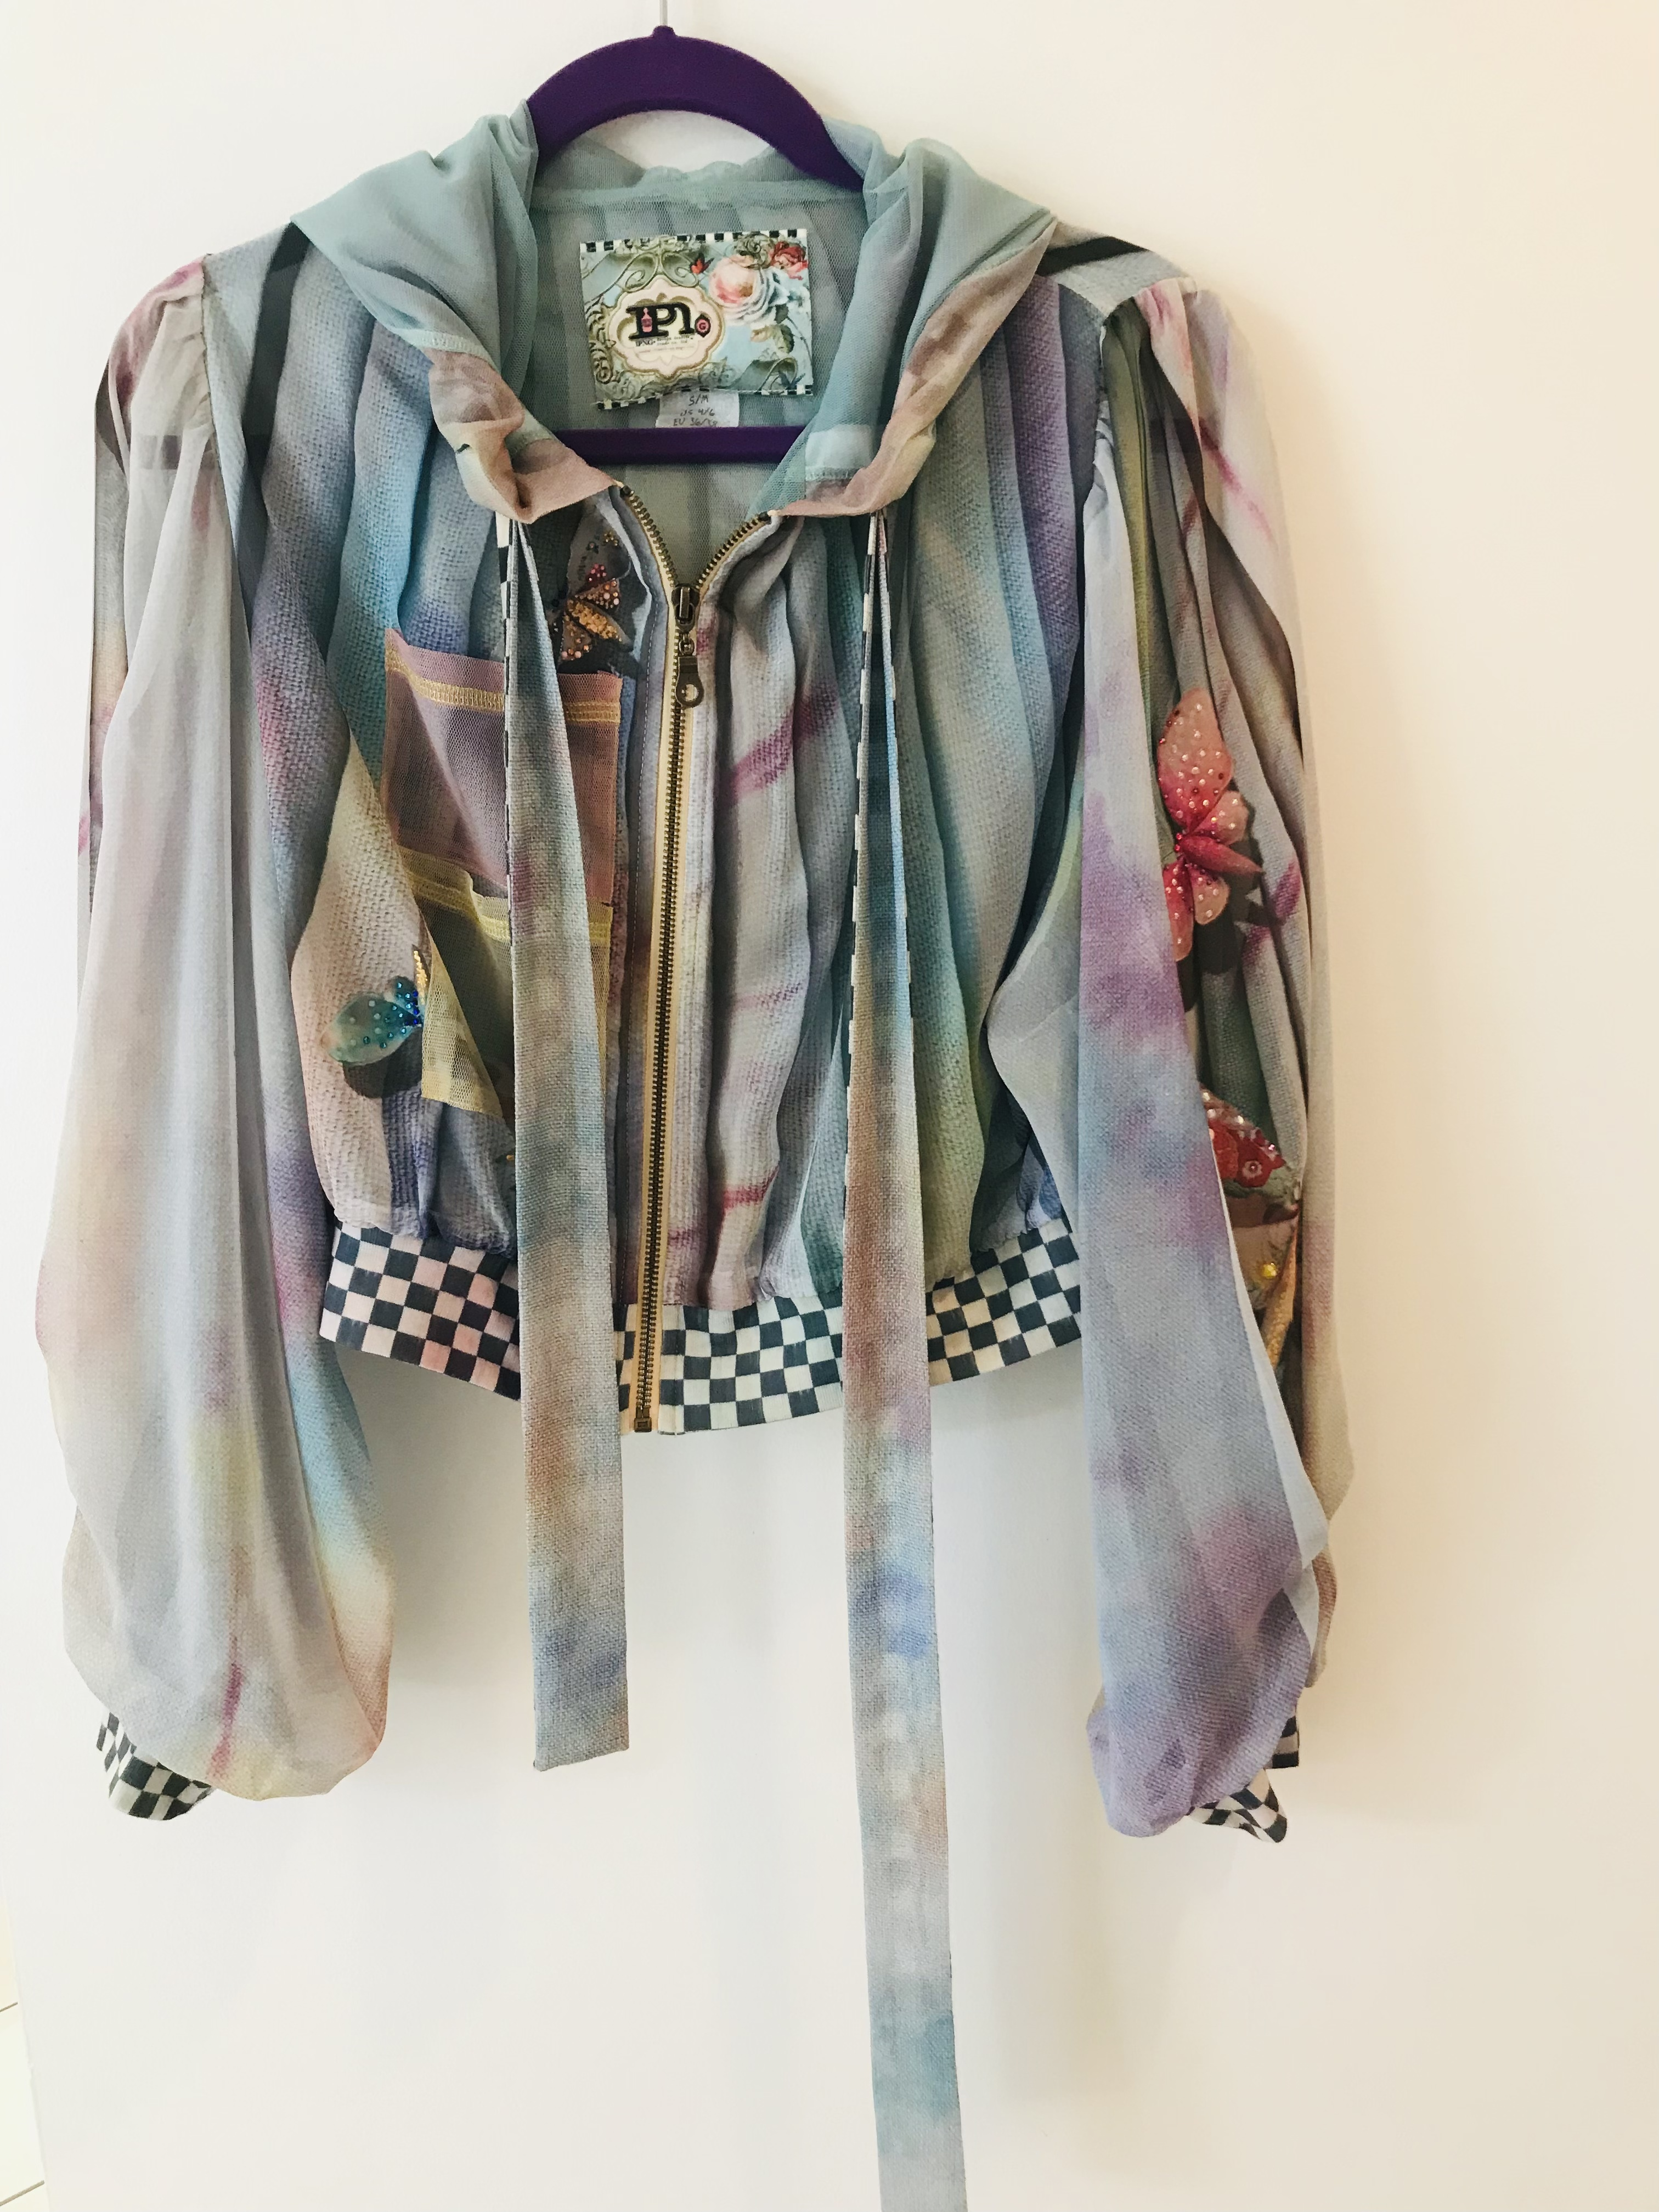 IPNG: Never Enough Color Orchid Illusion Hoody Puff Jacket IPNG_NECGP-046